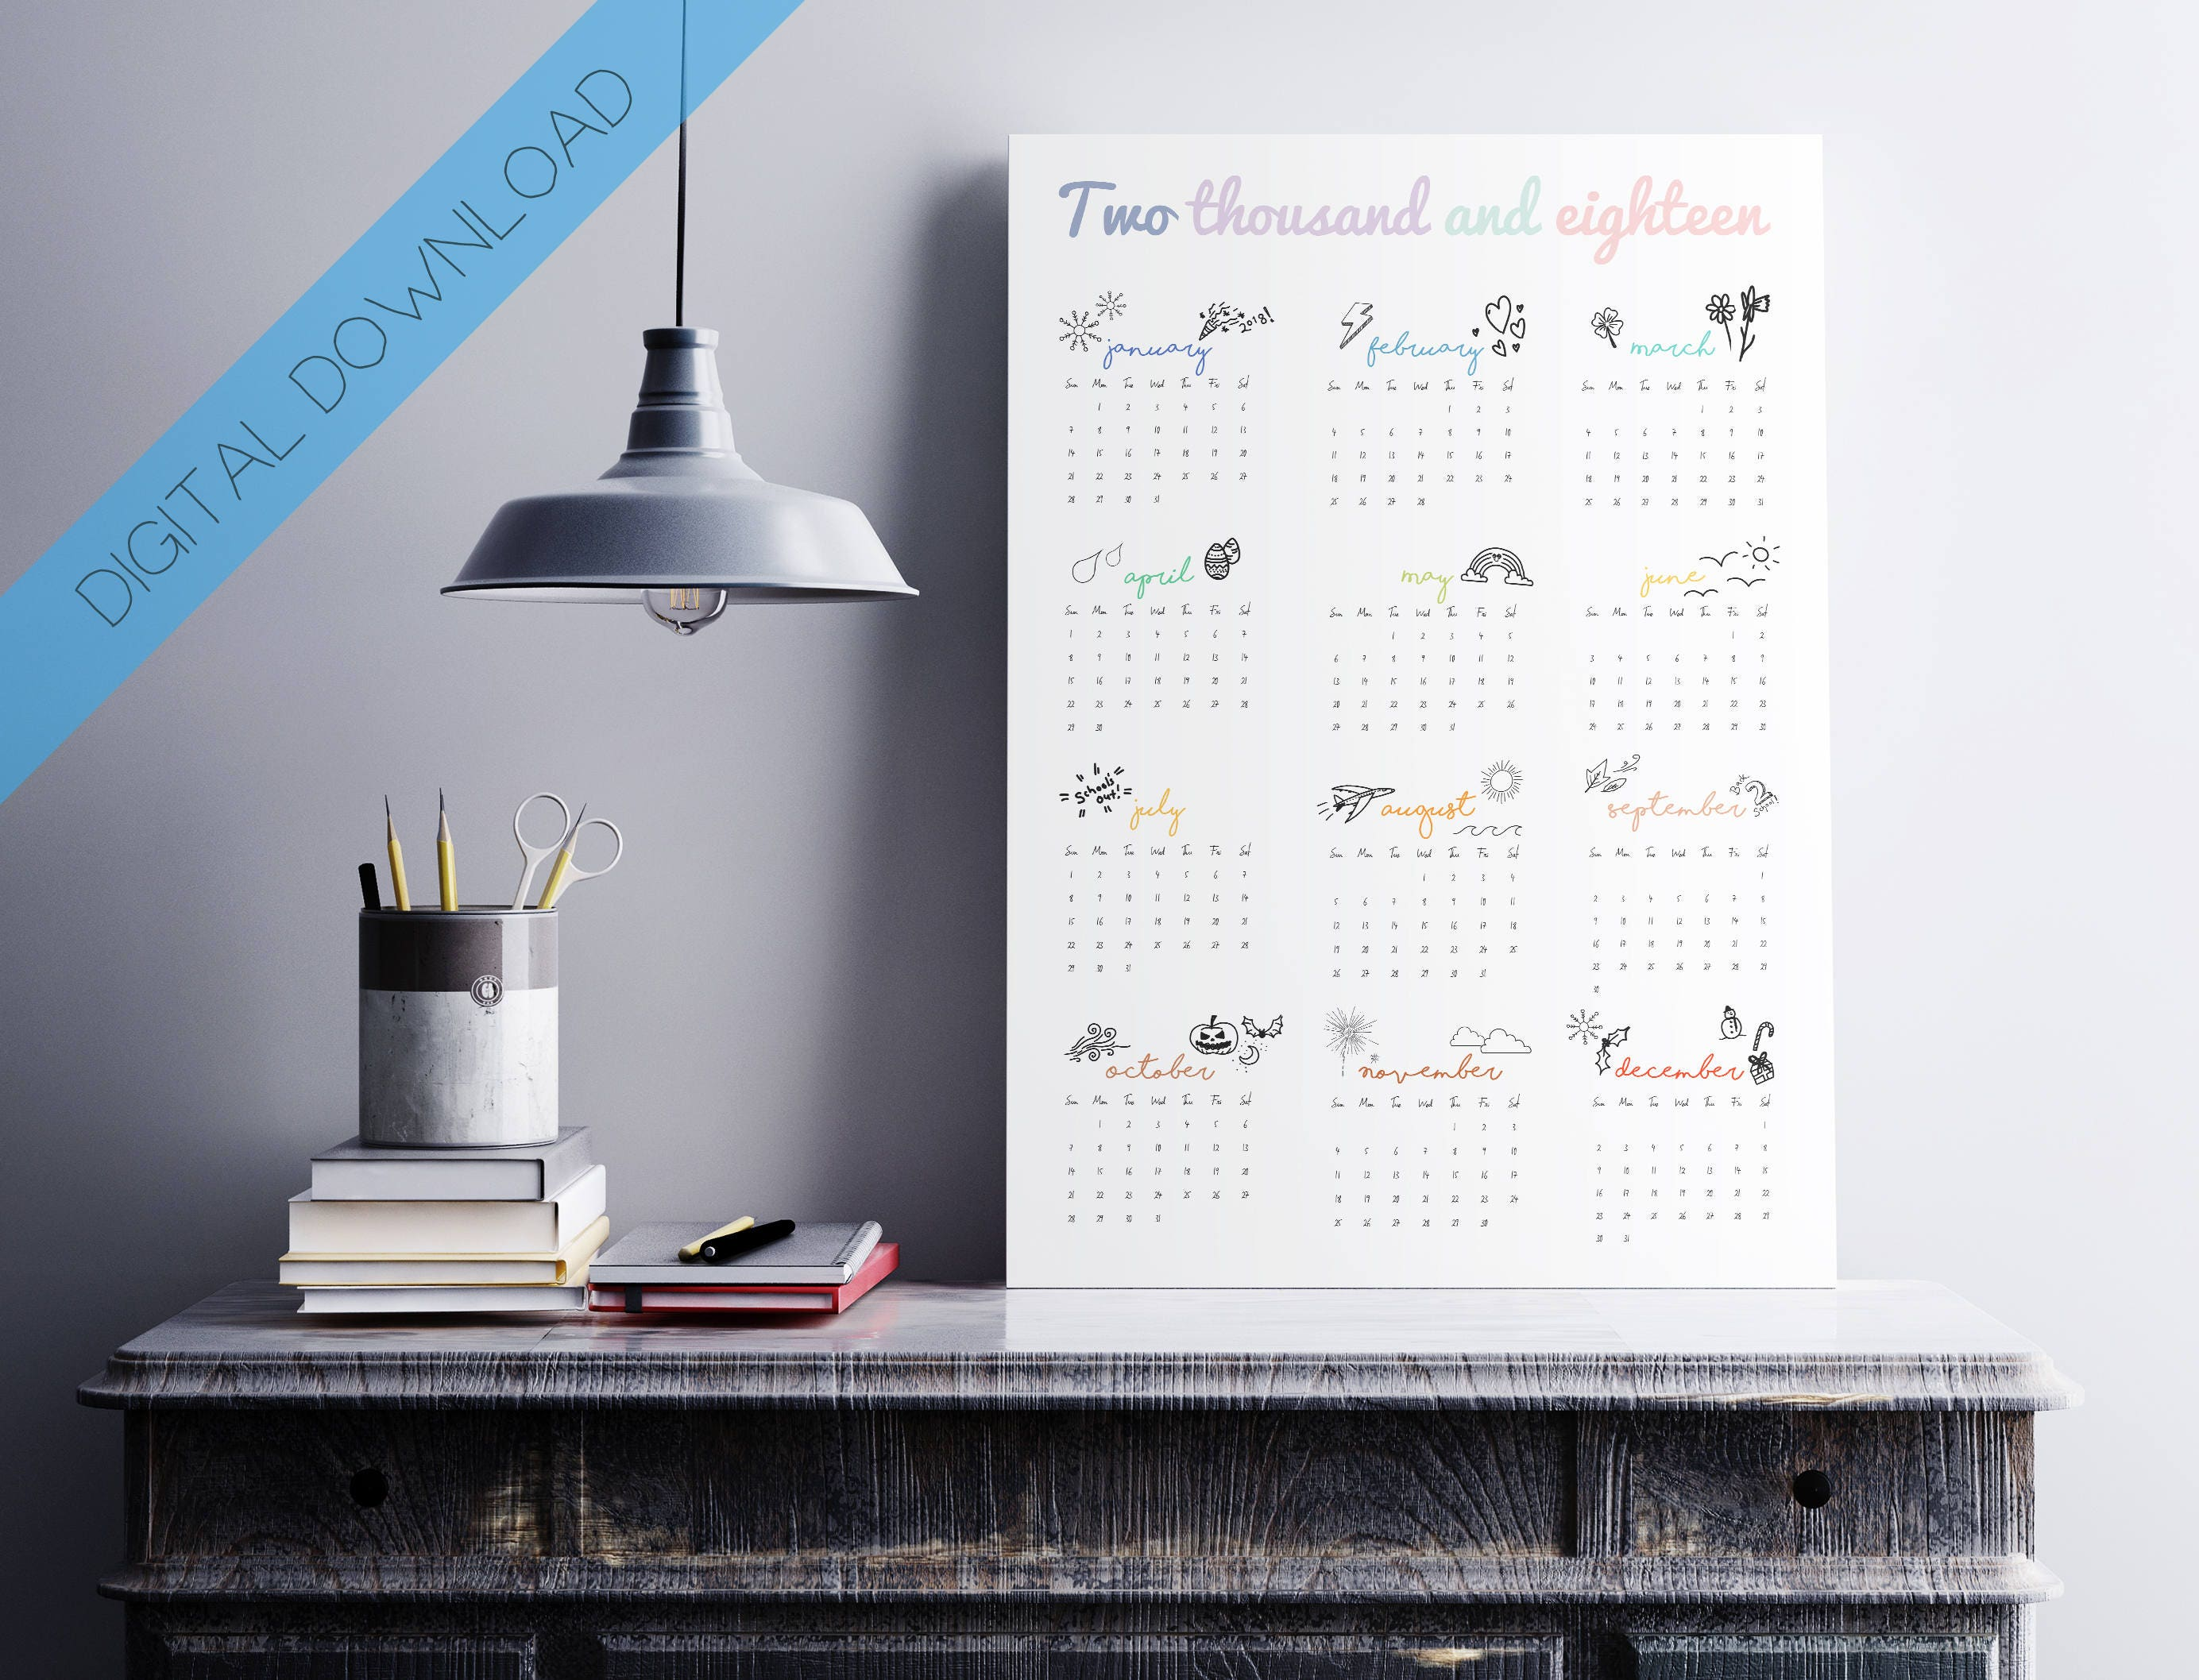 2018 wall planner digital download calendar 2018 year planner doodles hand drawn monthly